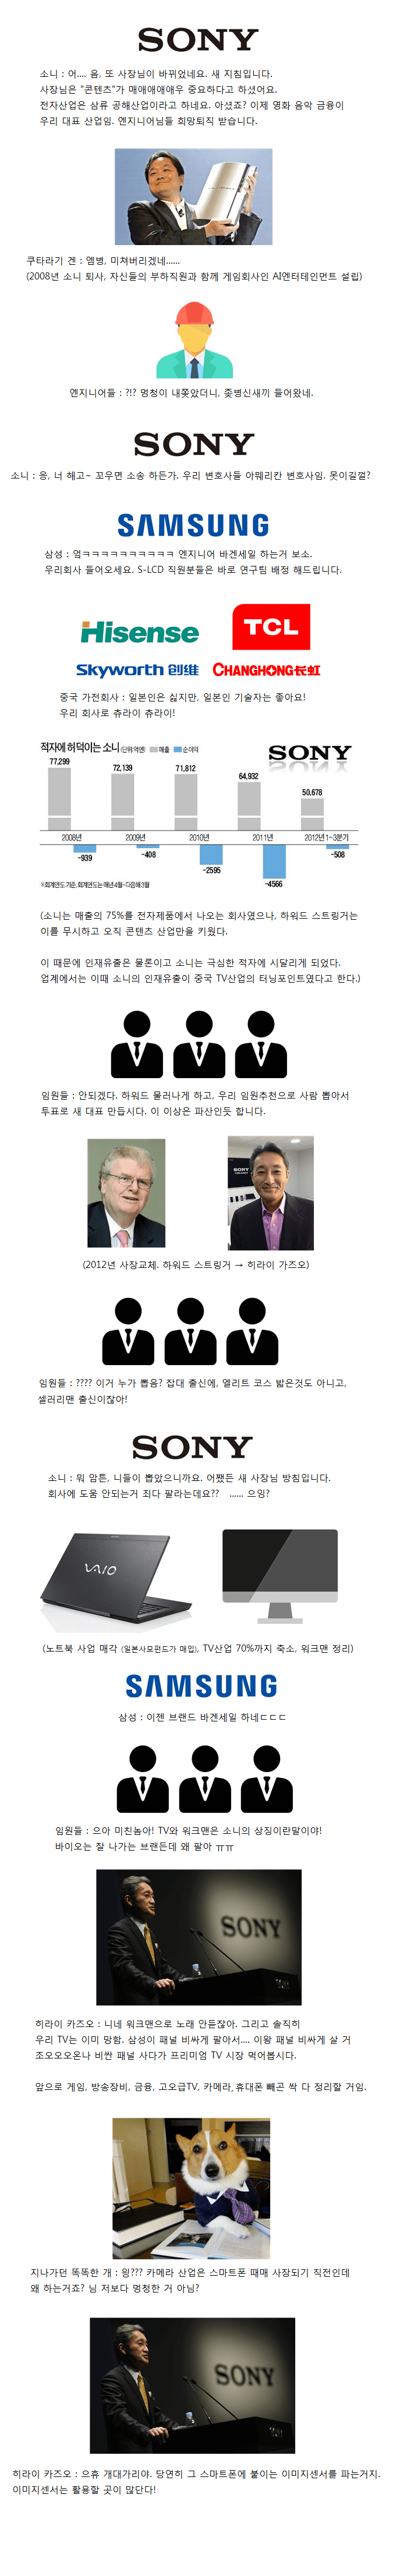 sony03.png